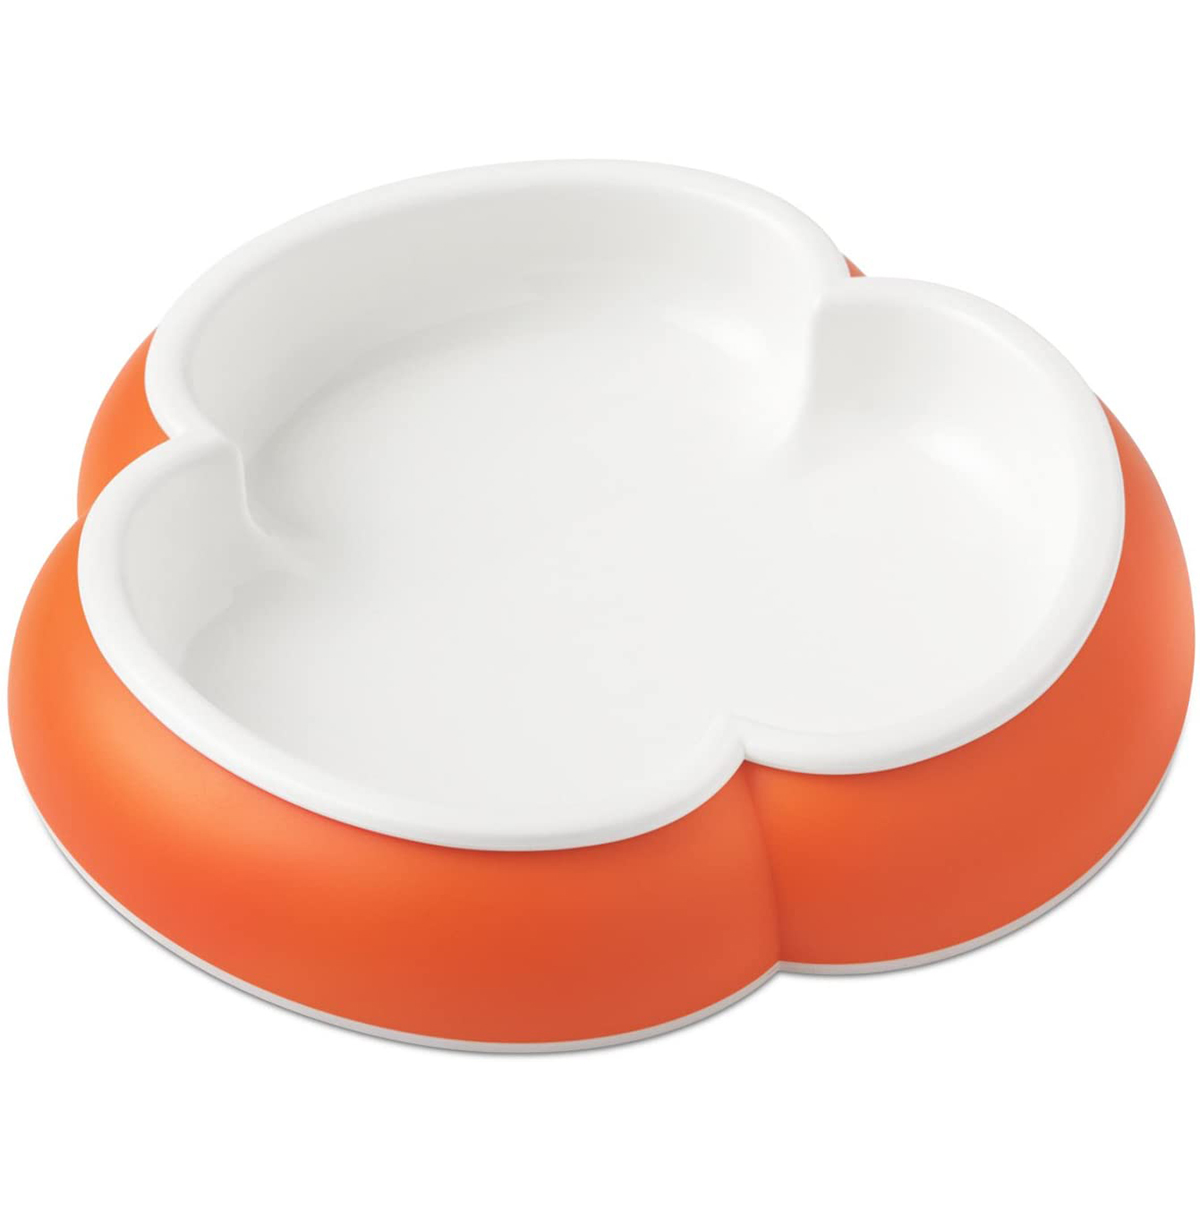 Hot Clover Shaped Plates, Made Of BPA Free Plastic